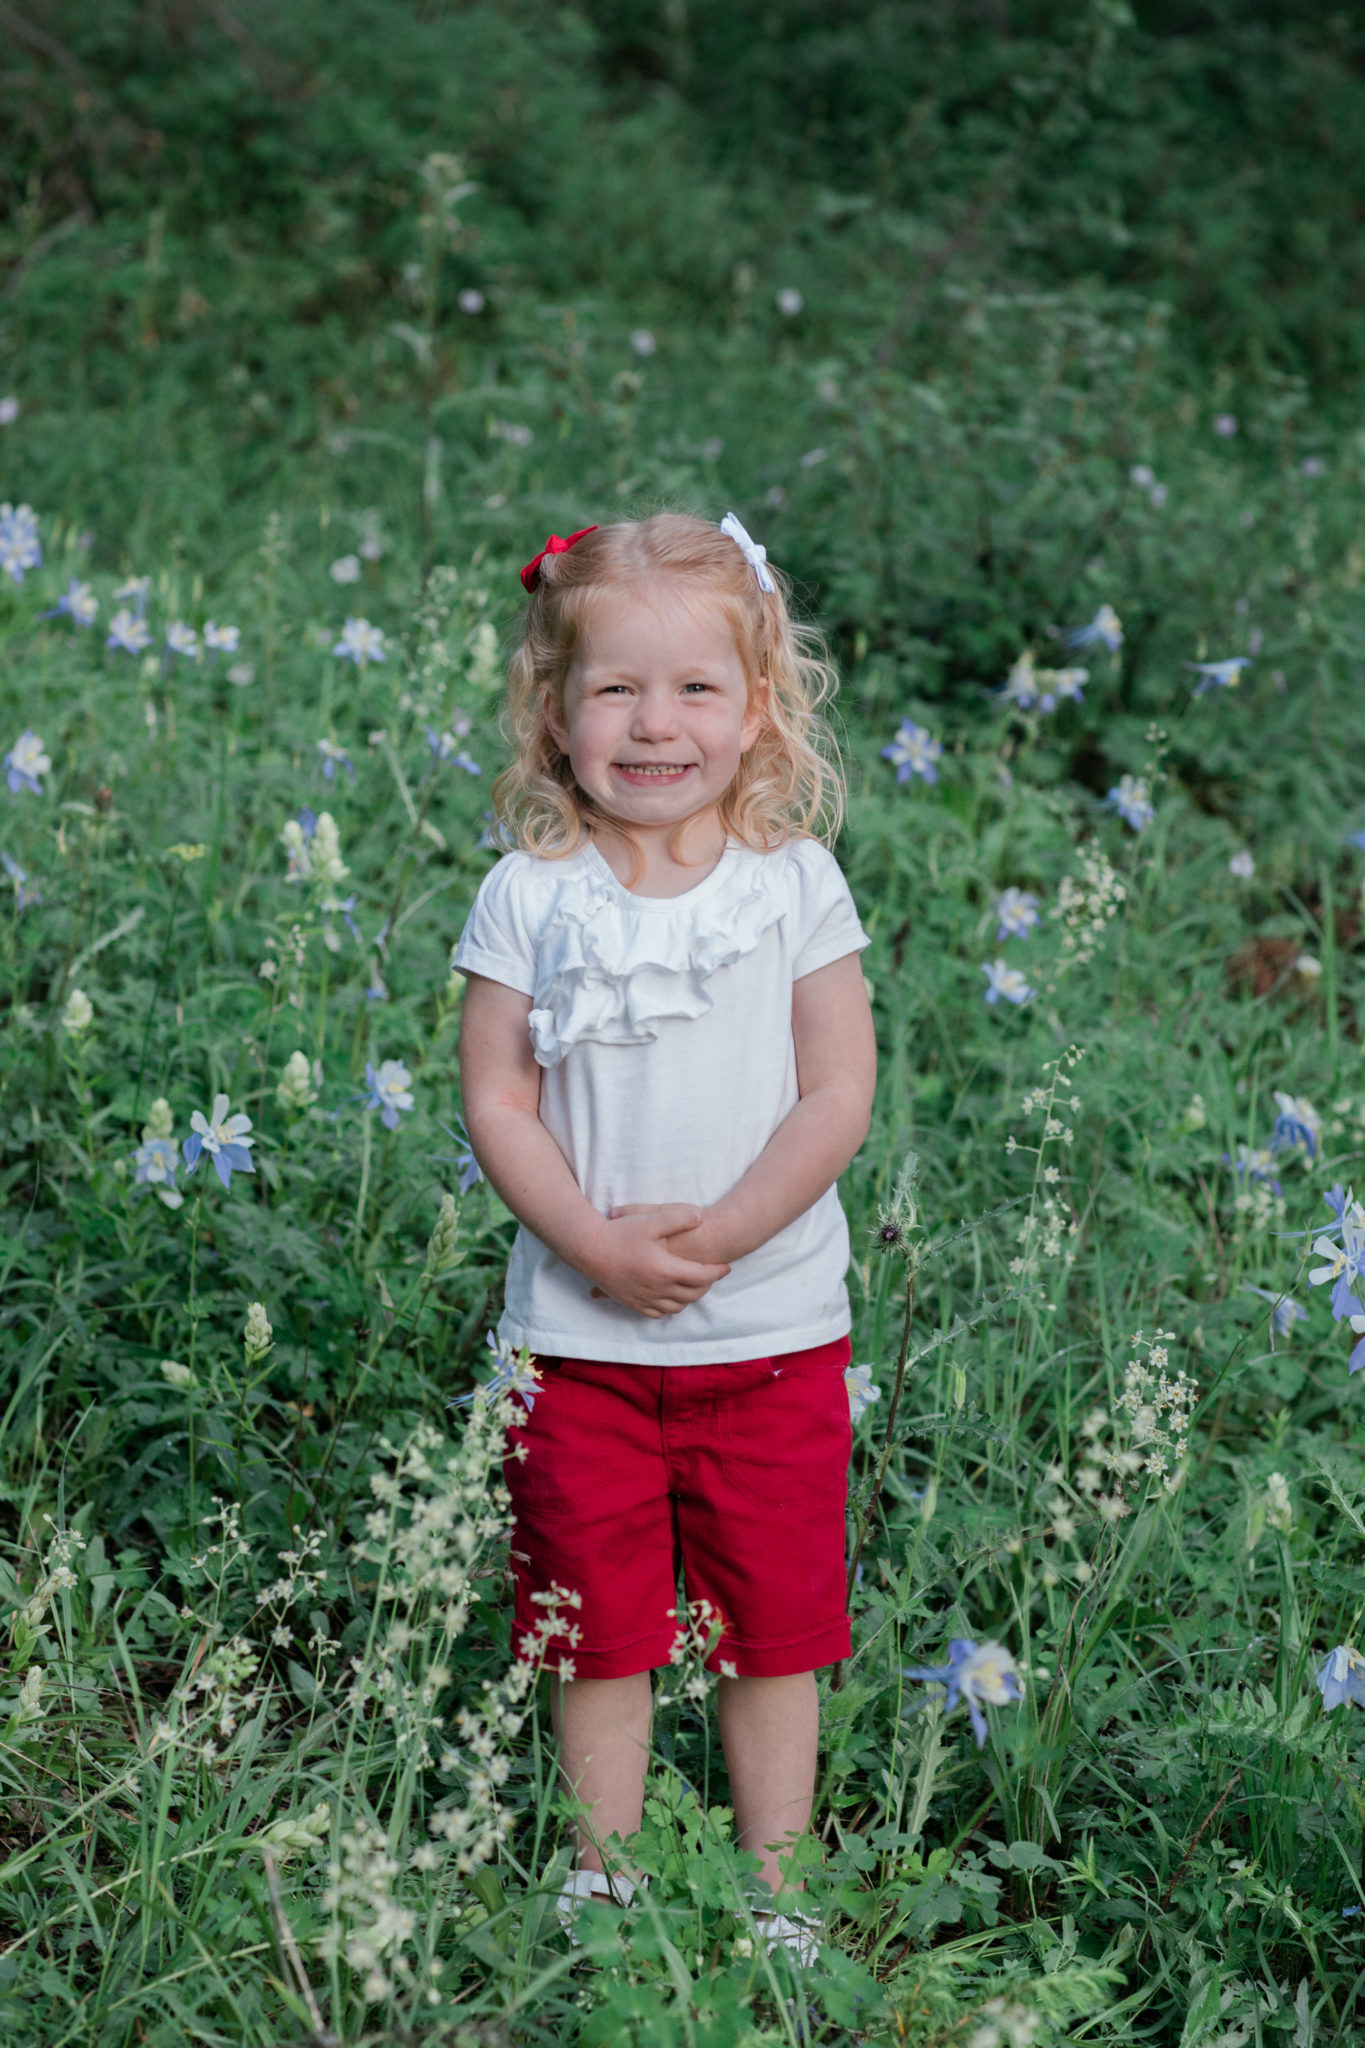 Breckenridge Family Photographer for Families Vacationing in Breckenridge